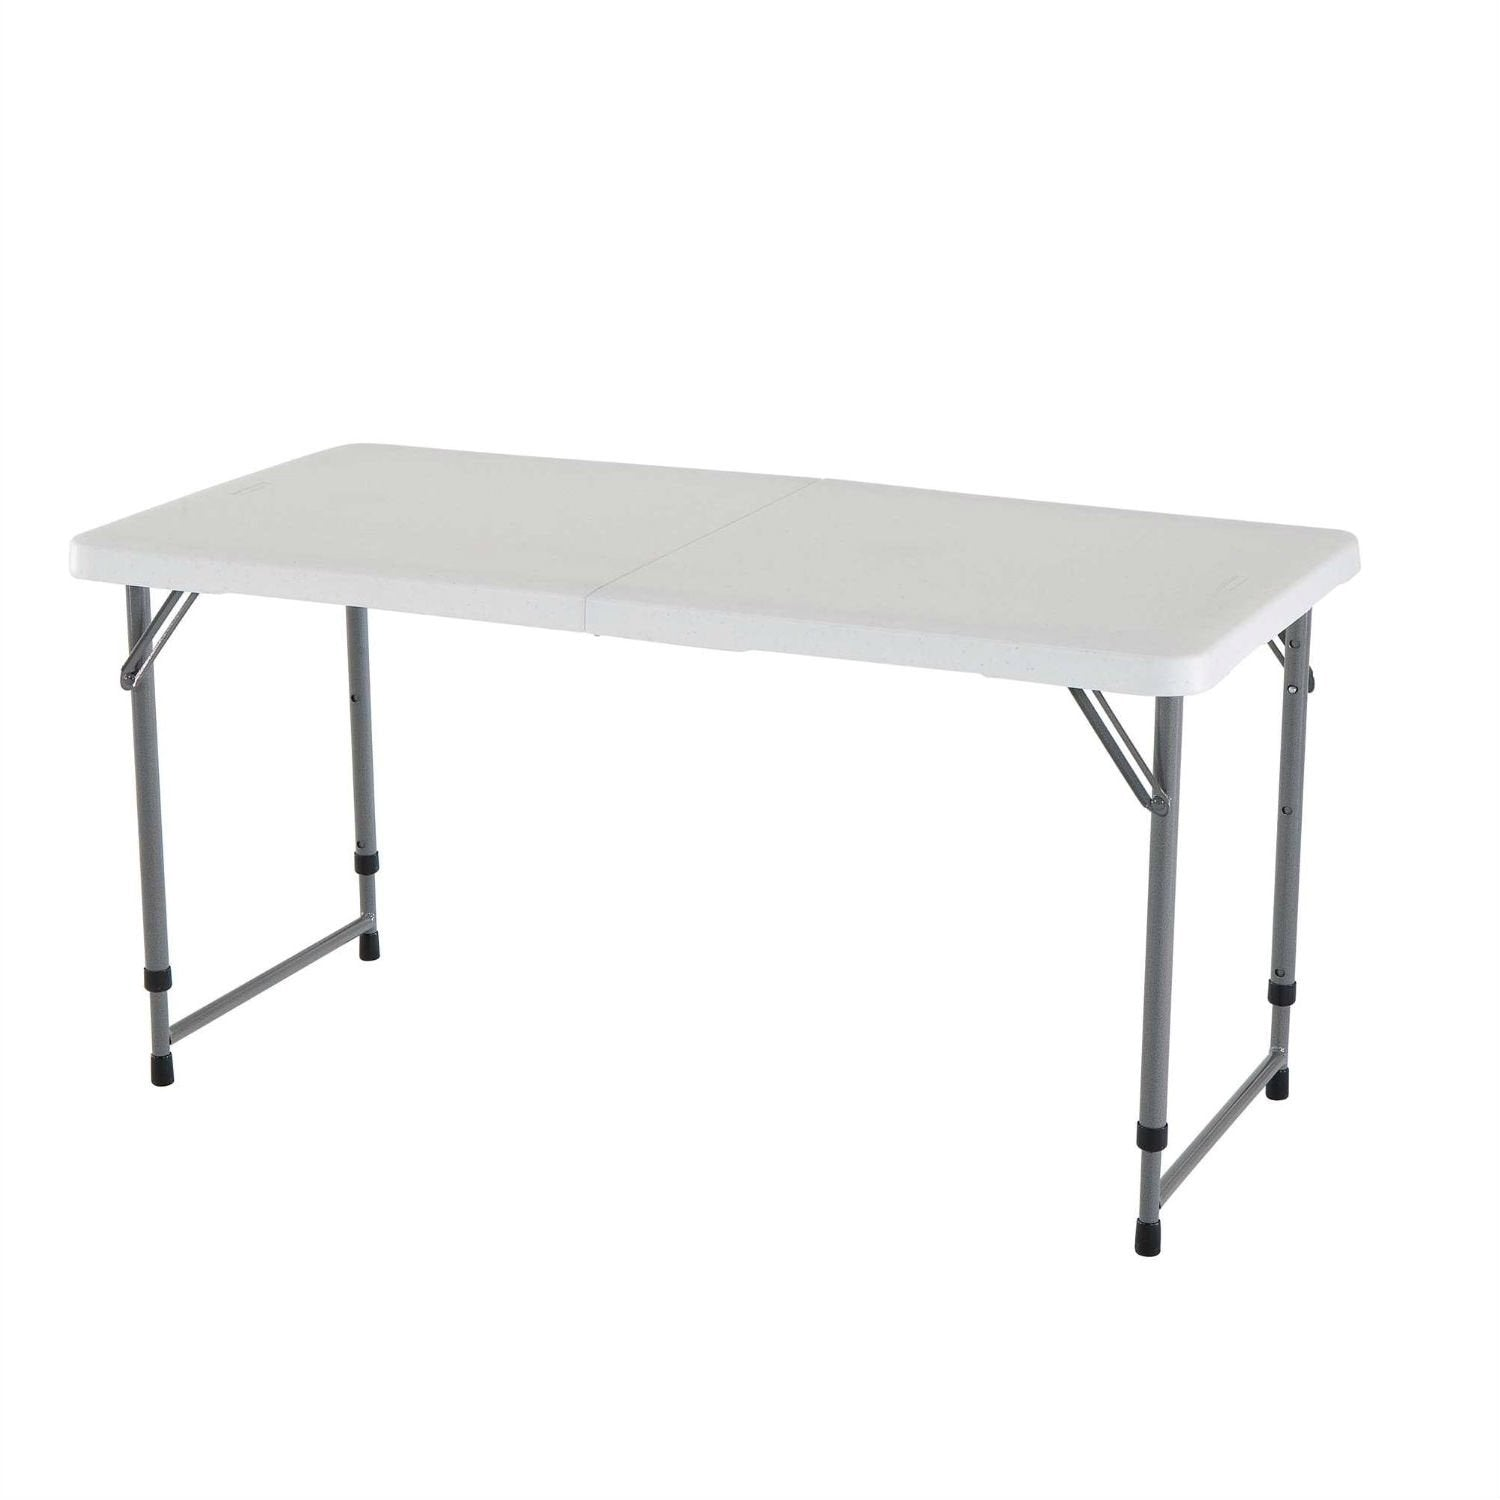 Adjustable Height White Plastic Top Folding Table with Sturdy Steel Me